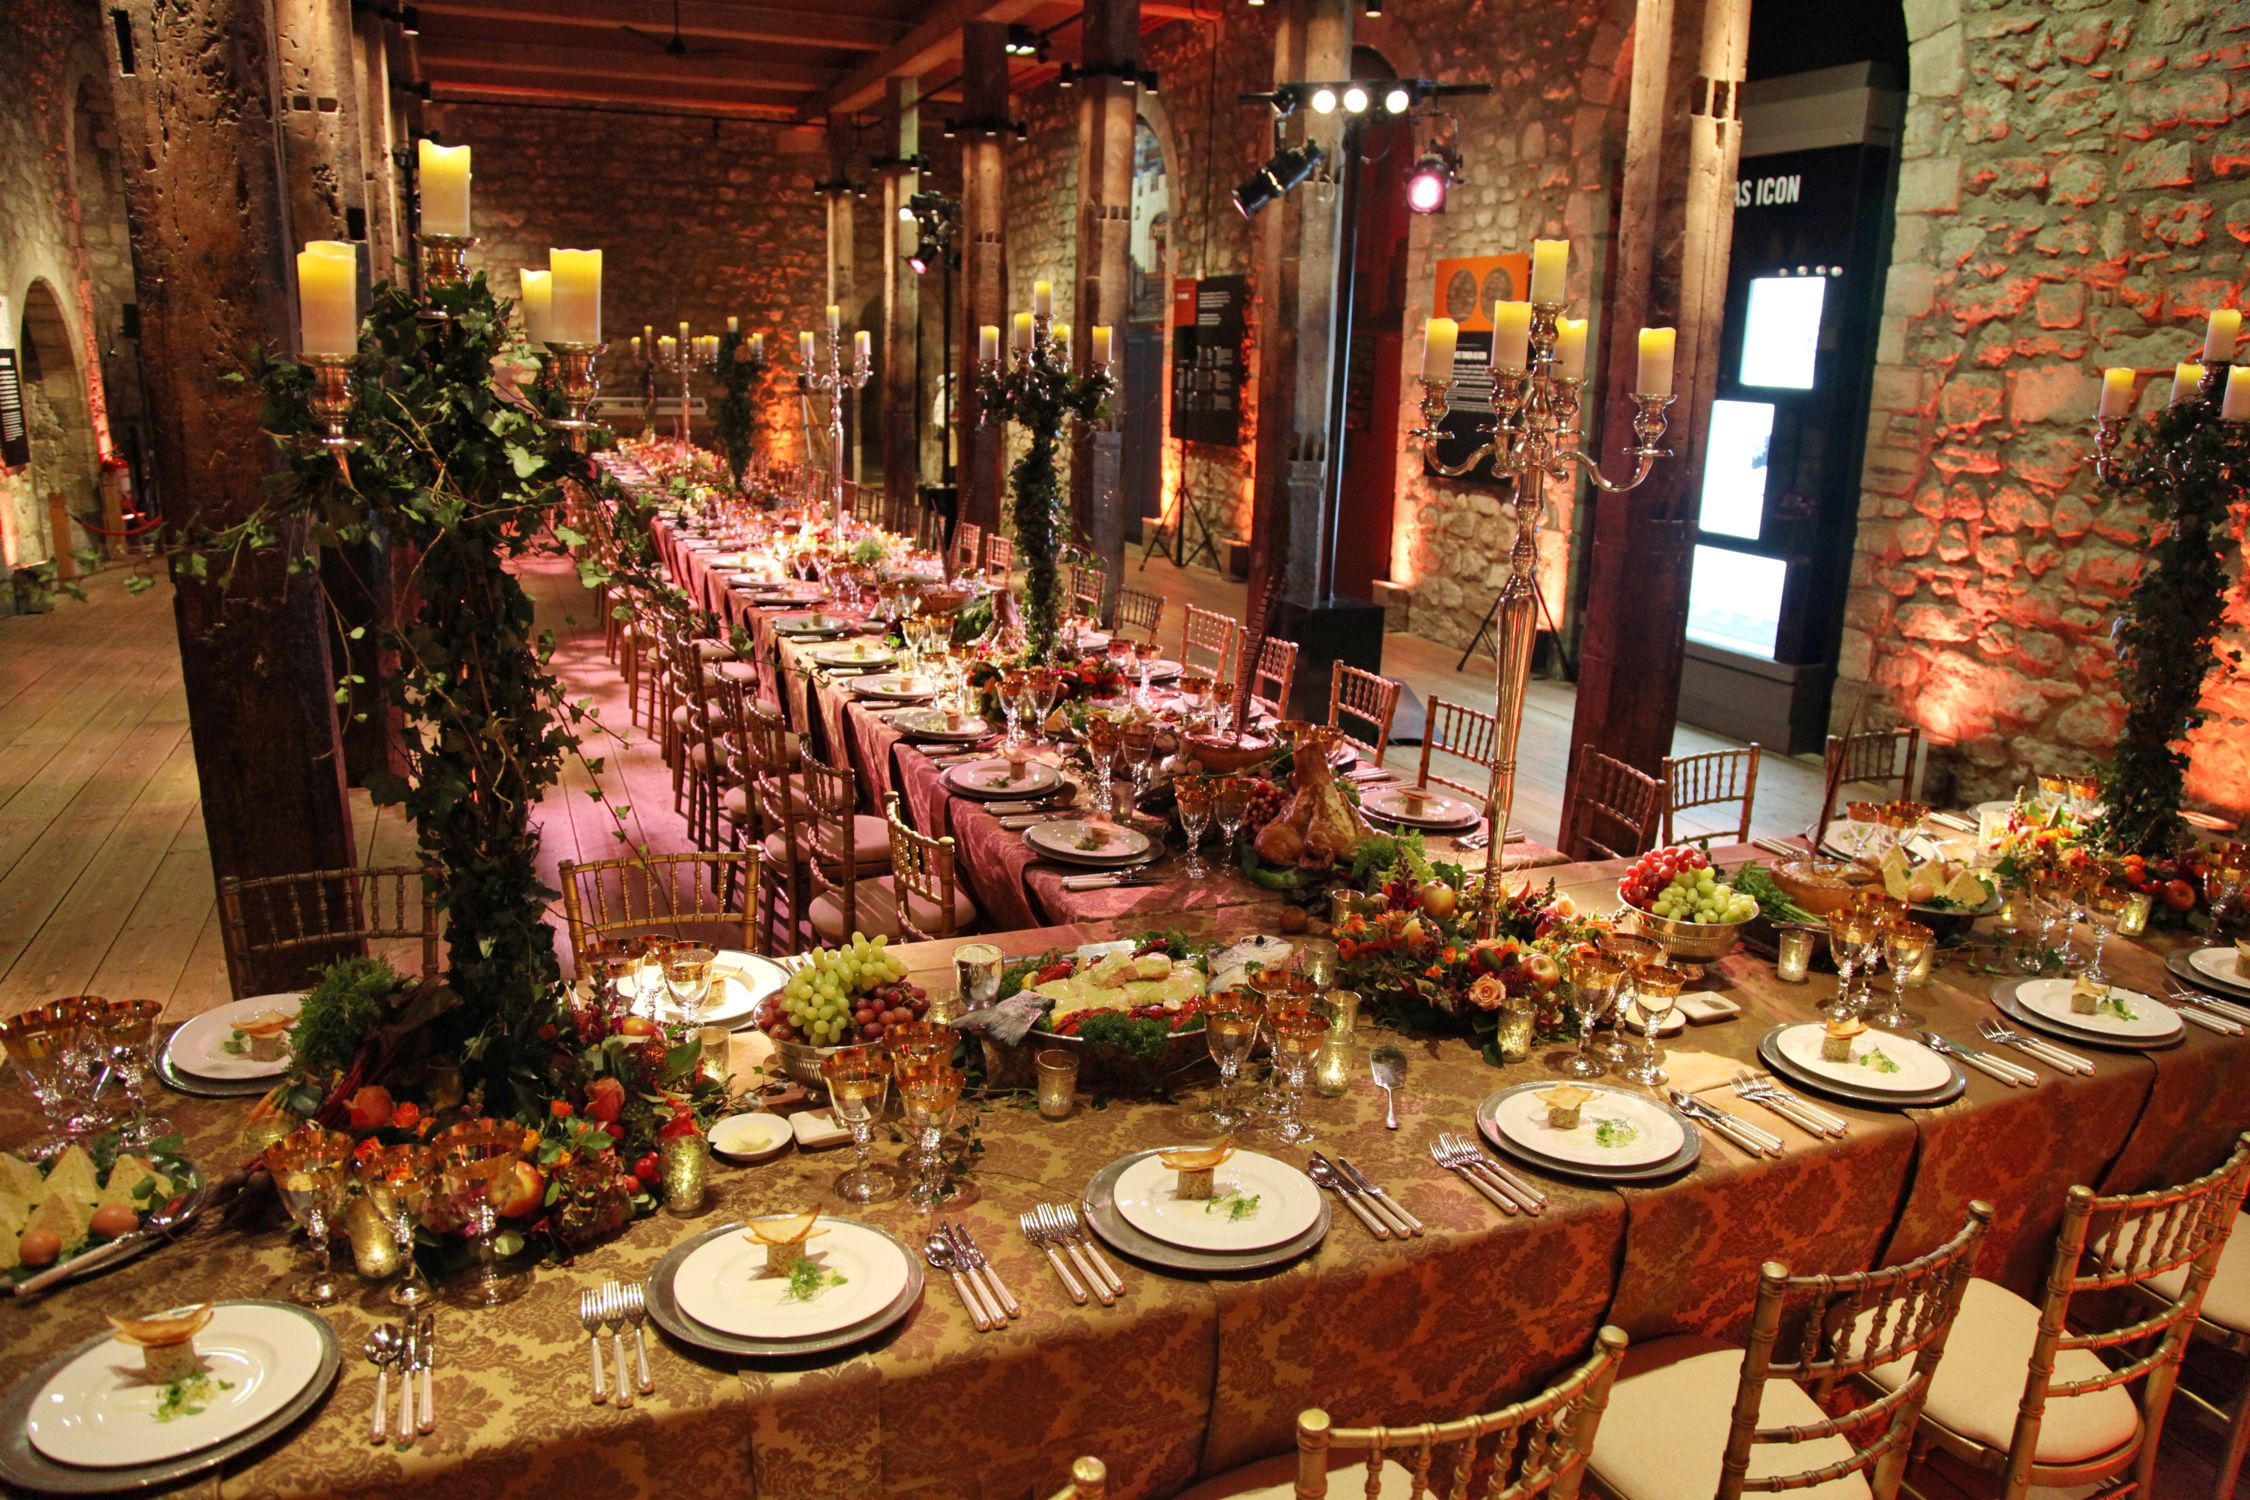 Event Decor London An Ornate Medieval Banquet Table In The White Tower At Tower Of